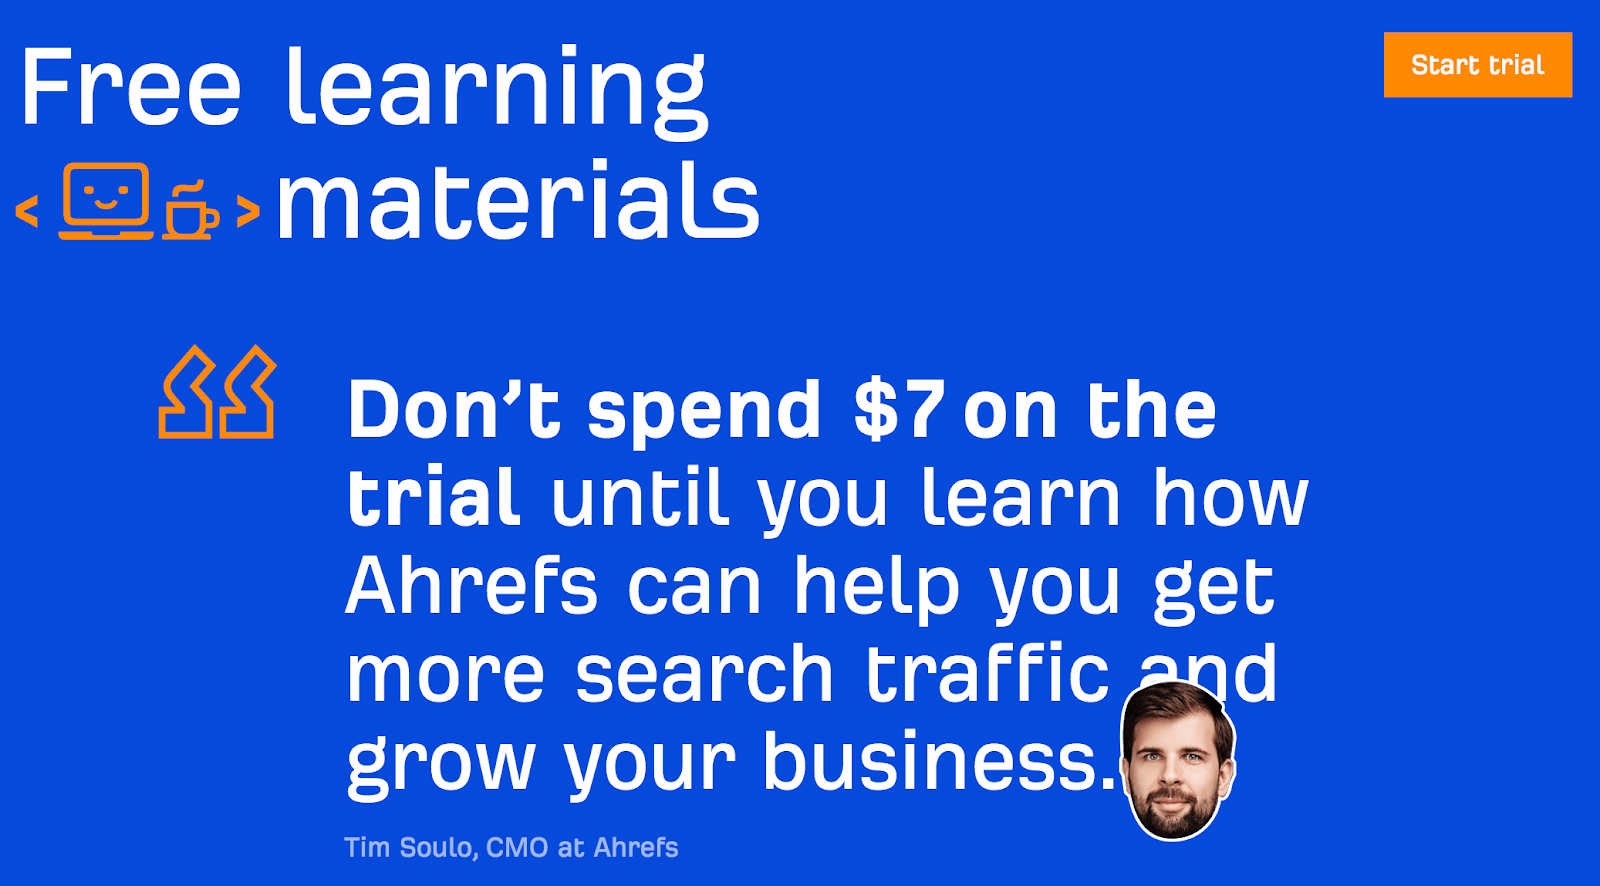 ahrefs homepage tim quote 1